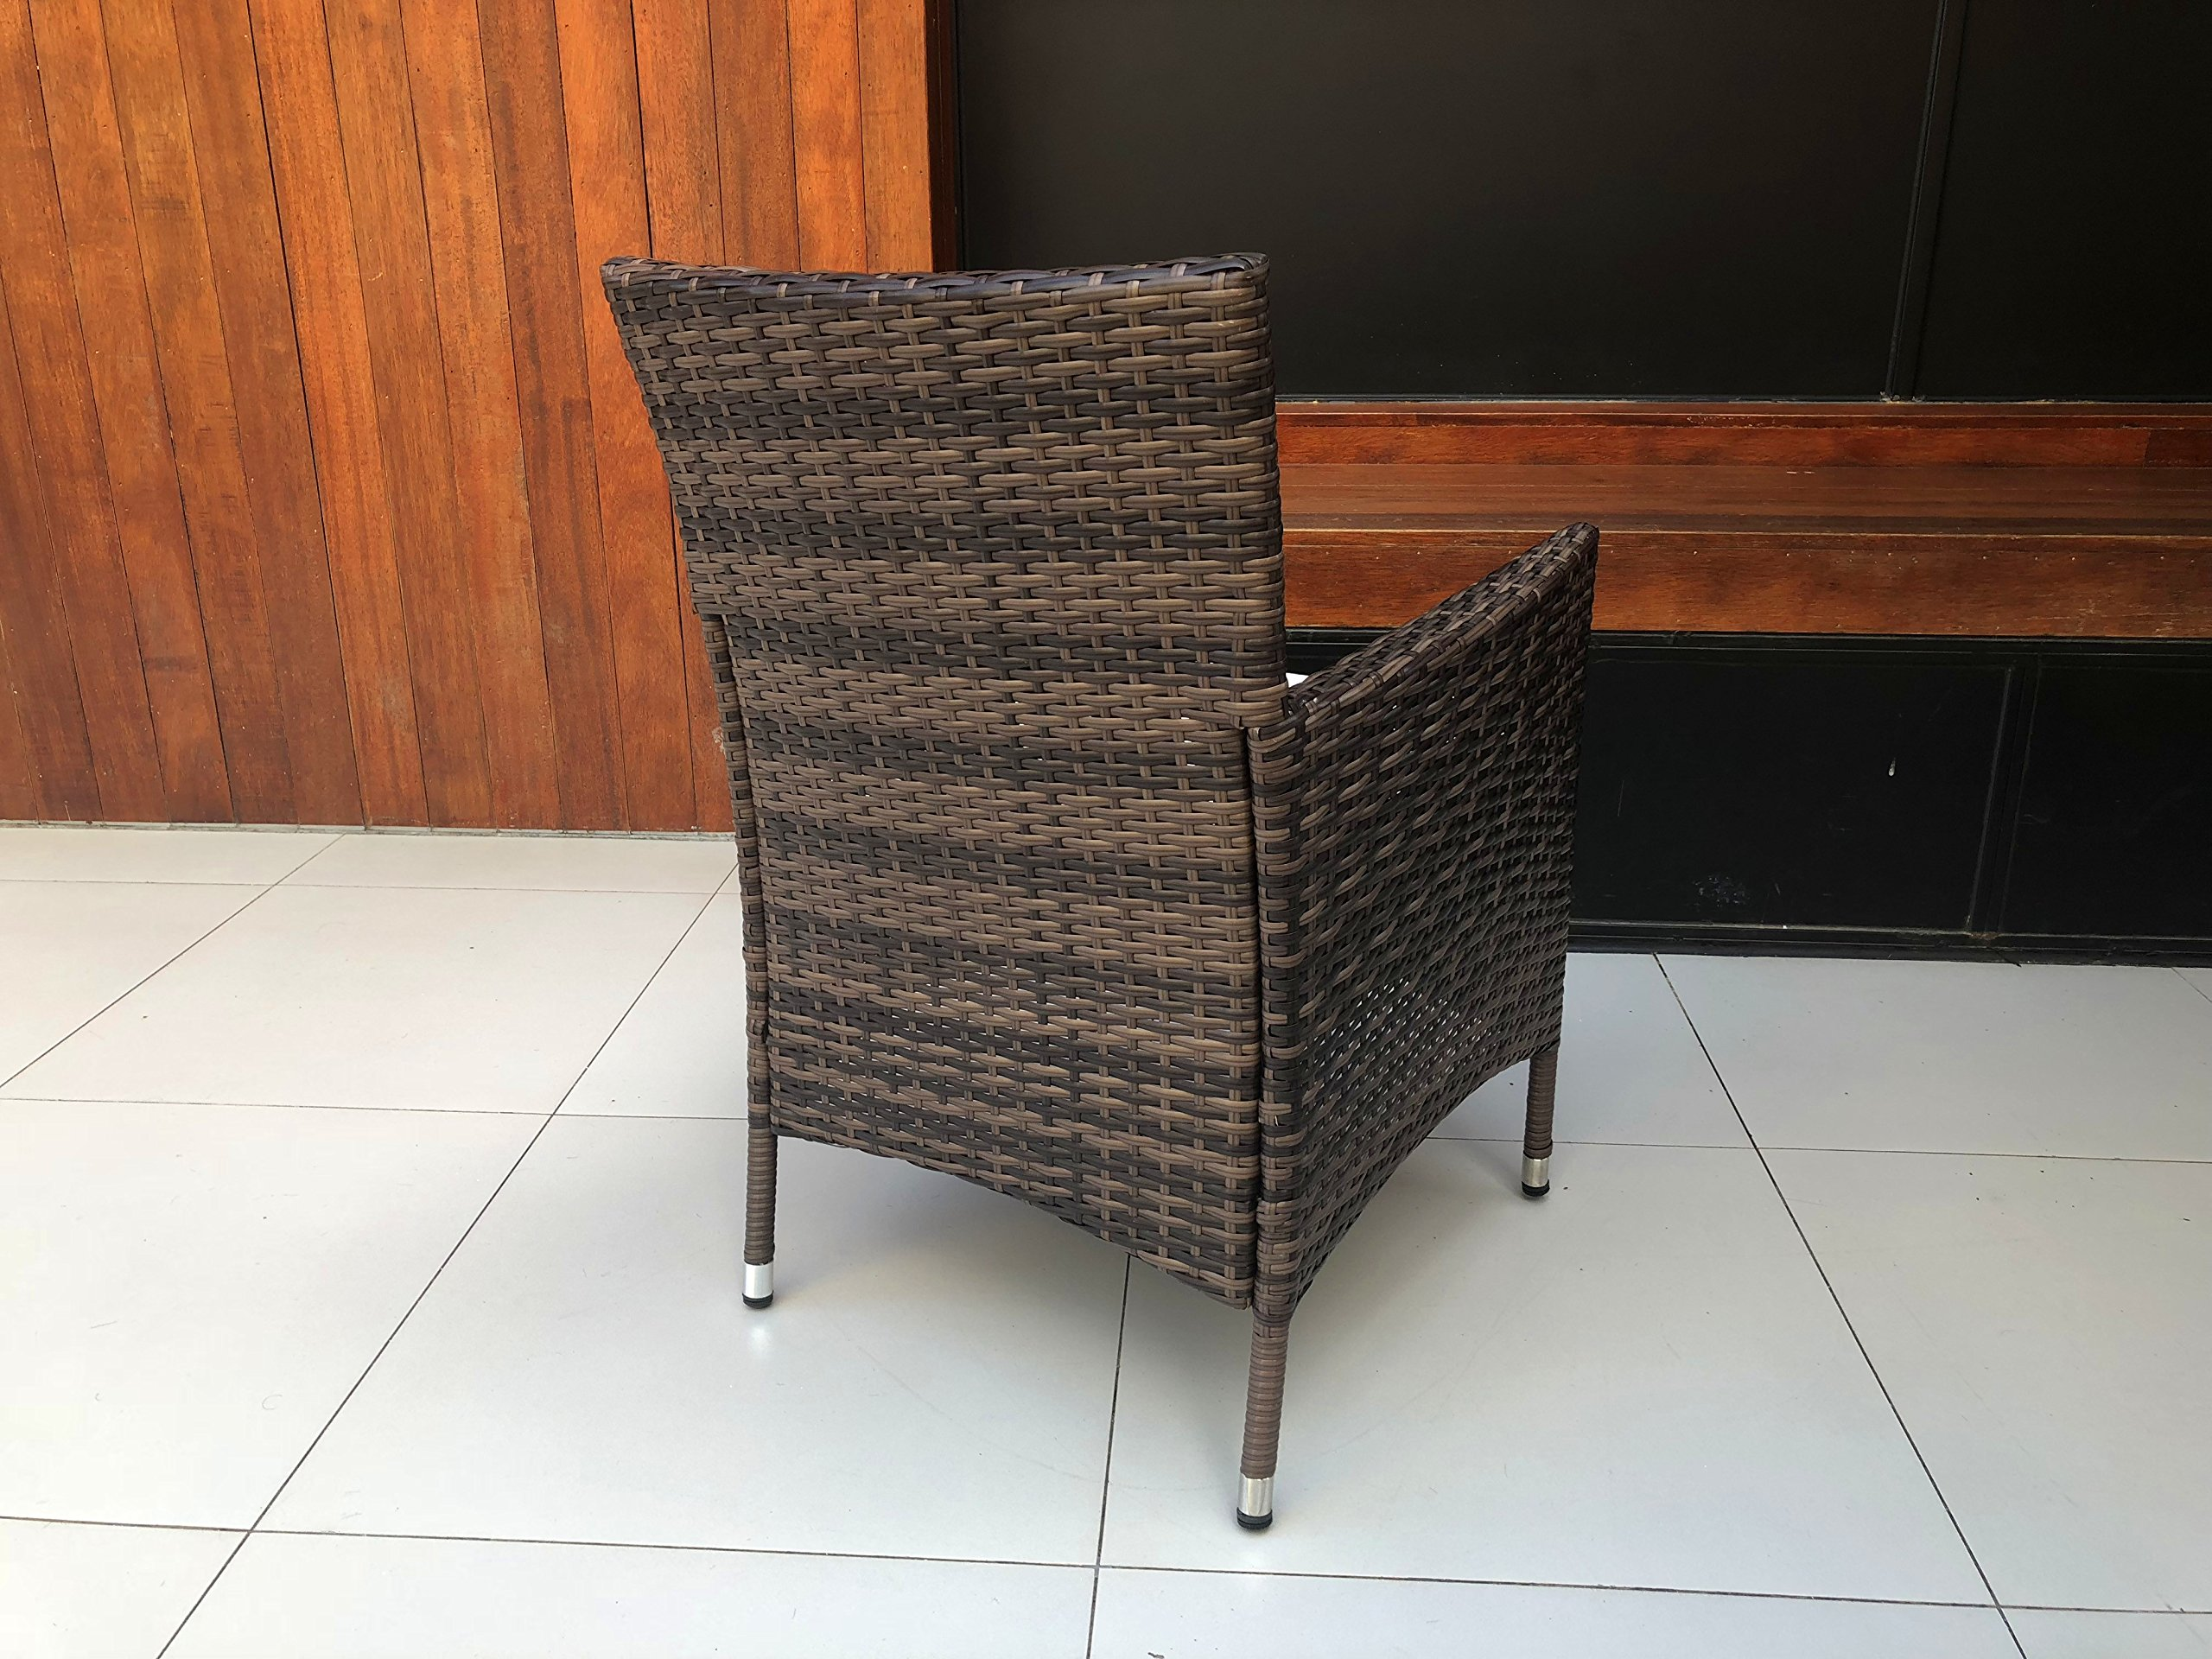 HTTH 2 Pcs Patio Rattan Dining Chairs with Soft Sofa Cushion   Wicker, Outdoor, Backyard, Porch, Garden, Poolside (2 Pcs, Mixed) by HTTH (Image #4)